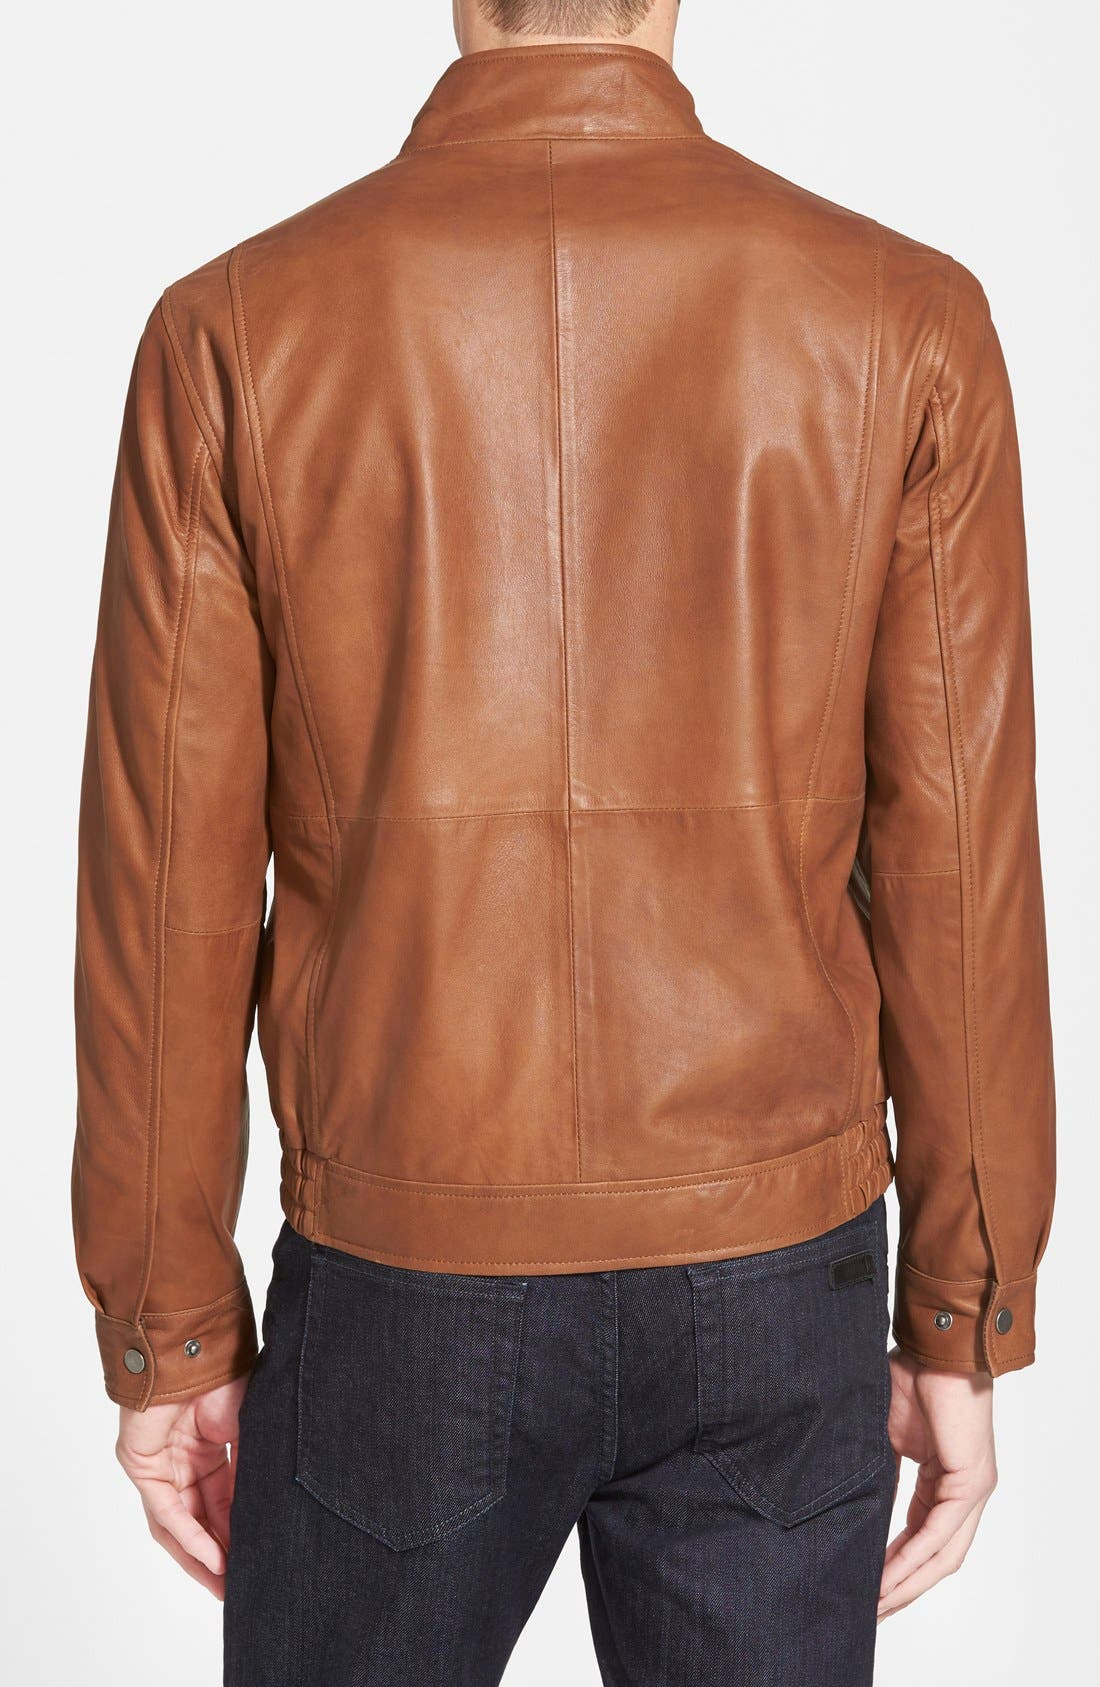 Leather Bomber Jacket,                             Alternate thumbnail 2, color,                             Saddle Brown